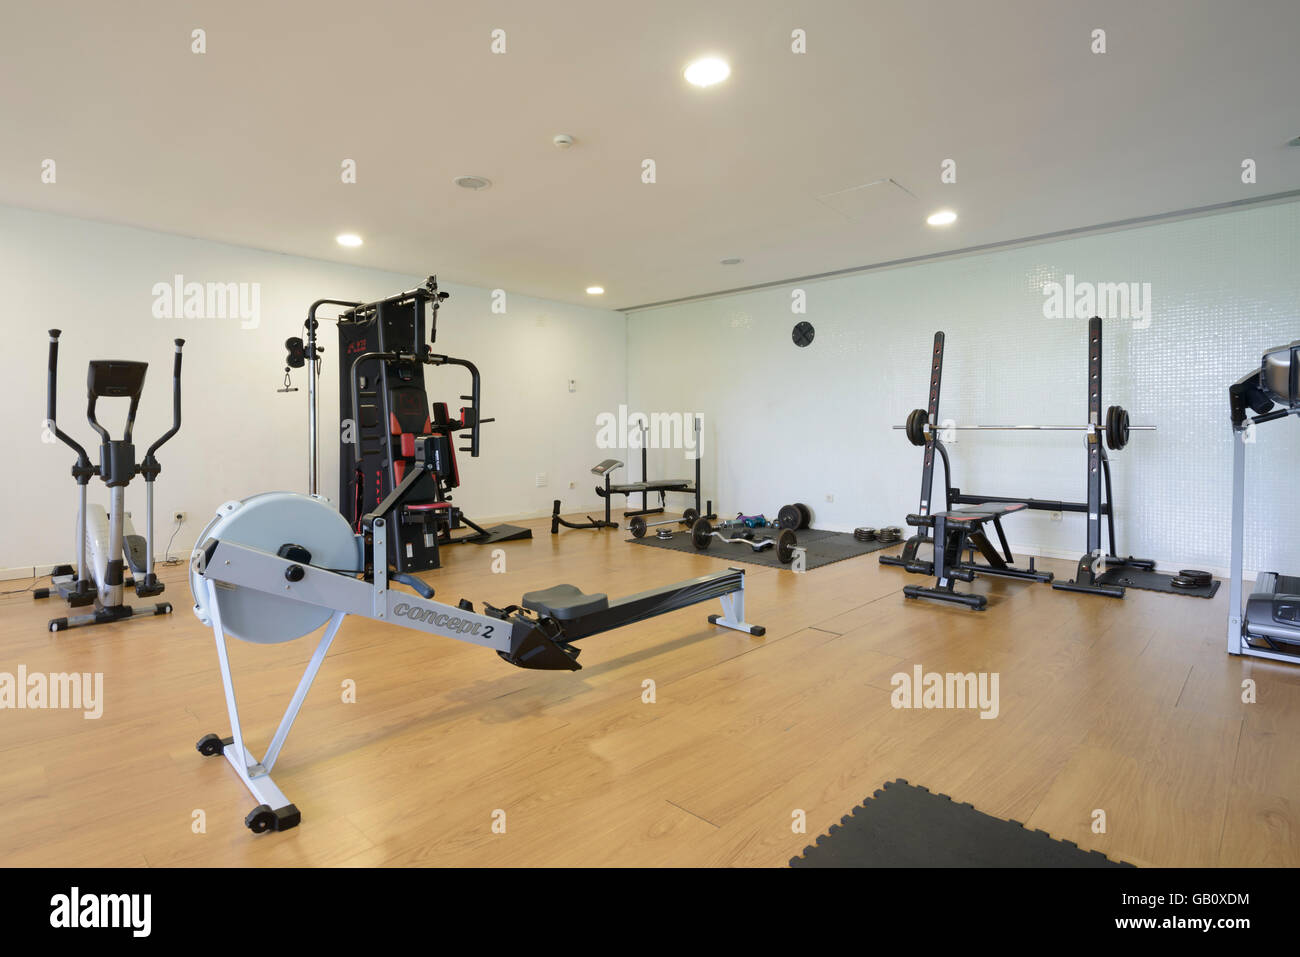 Exercise machines on a home gym - Stock Image